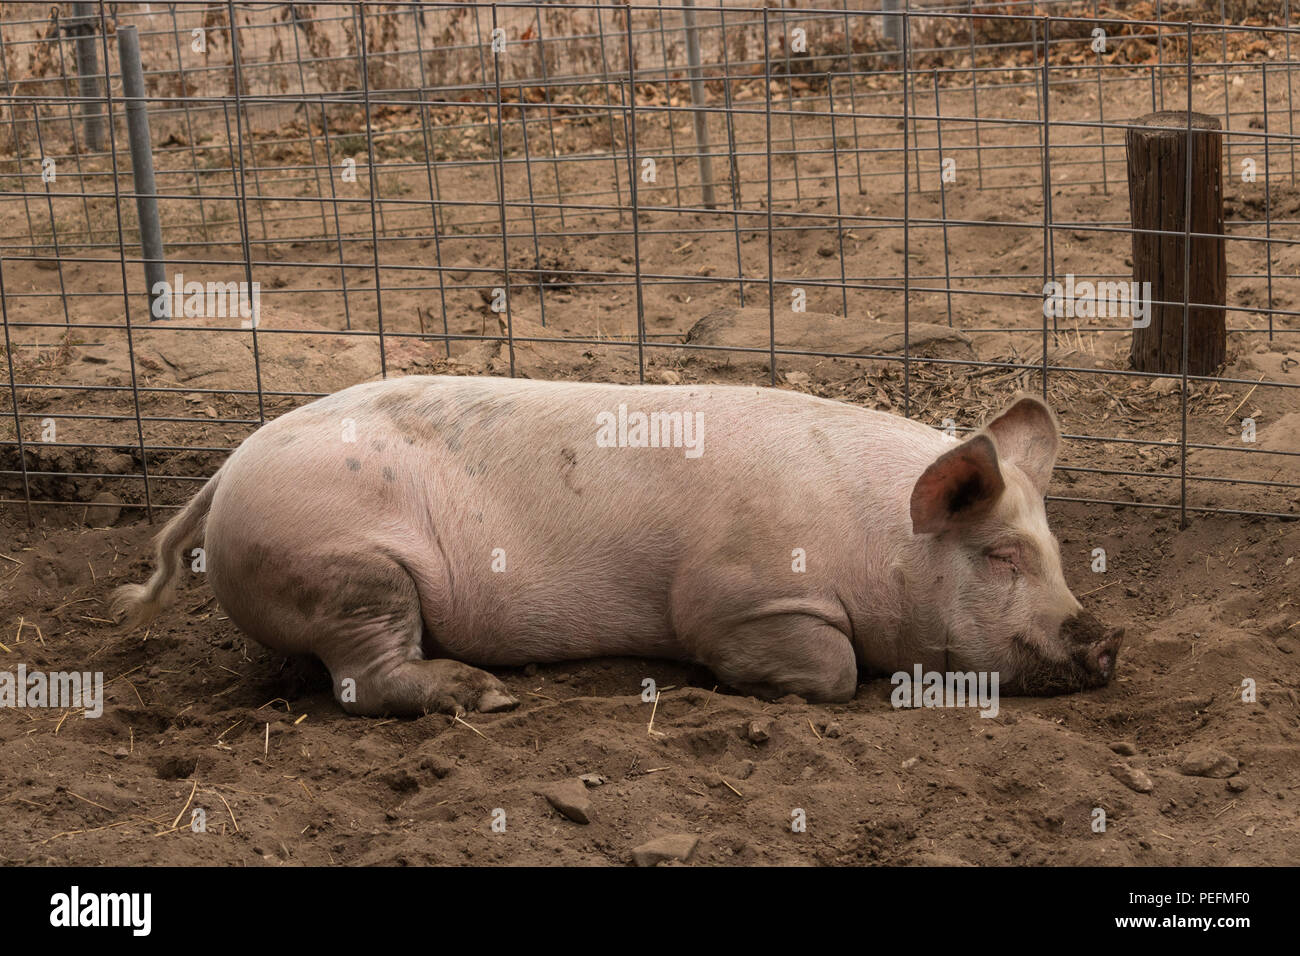 Full body shot of organic spotted lazy, sleepy, good natured single dirty young domestic pink laying down in his pen pig, with muddy feet, big ears, w - Stock Image